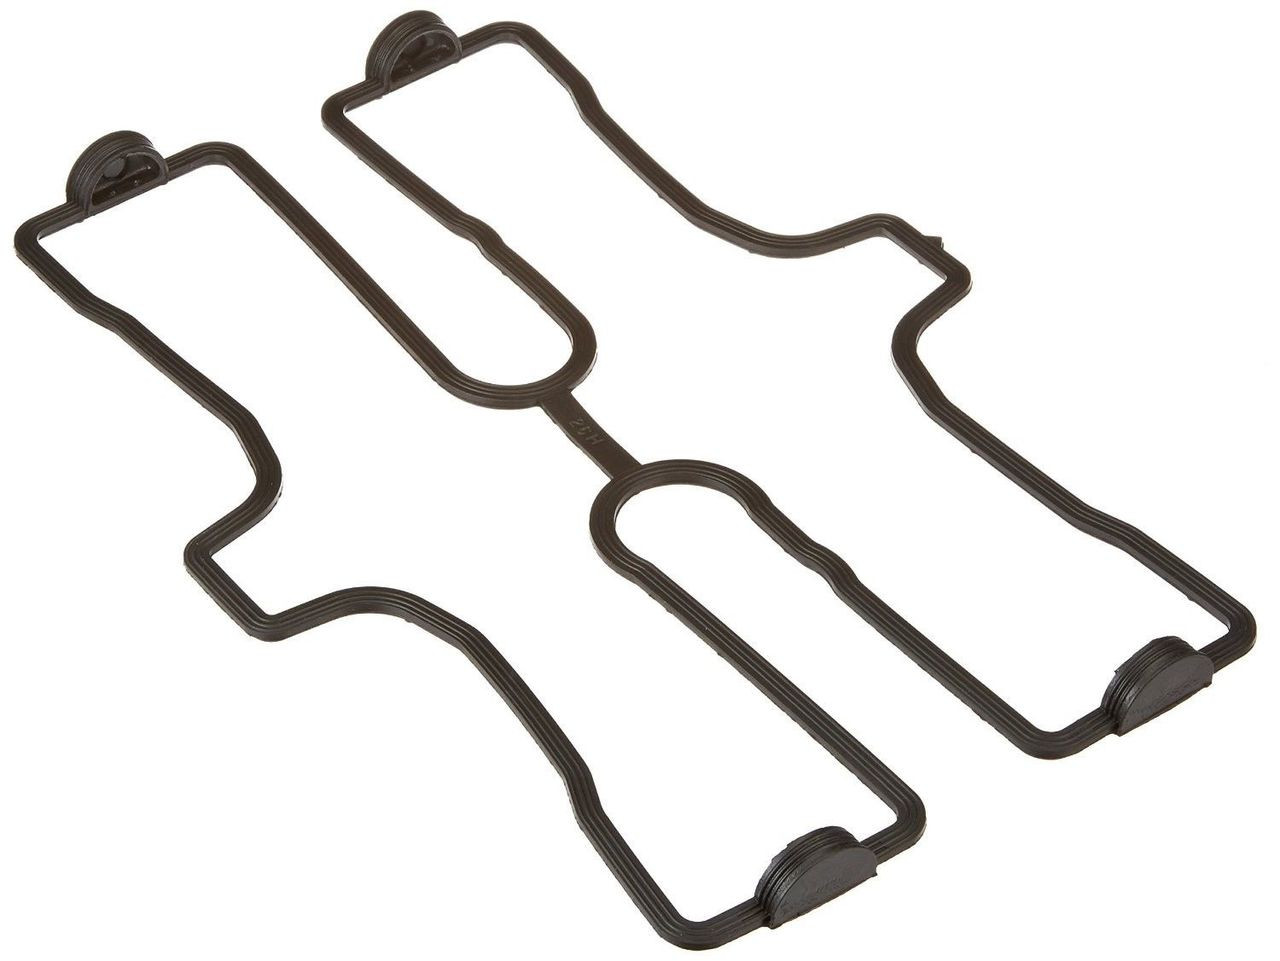 Athena Clutch Cover Gasket fits Yamaha VMX-12 1200 FC Vmax 1994